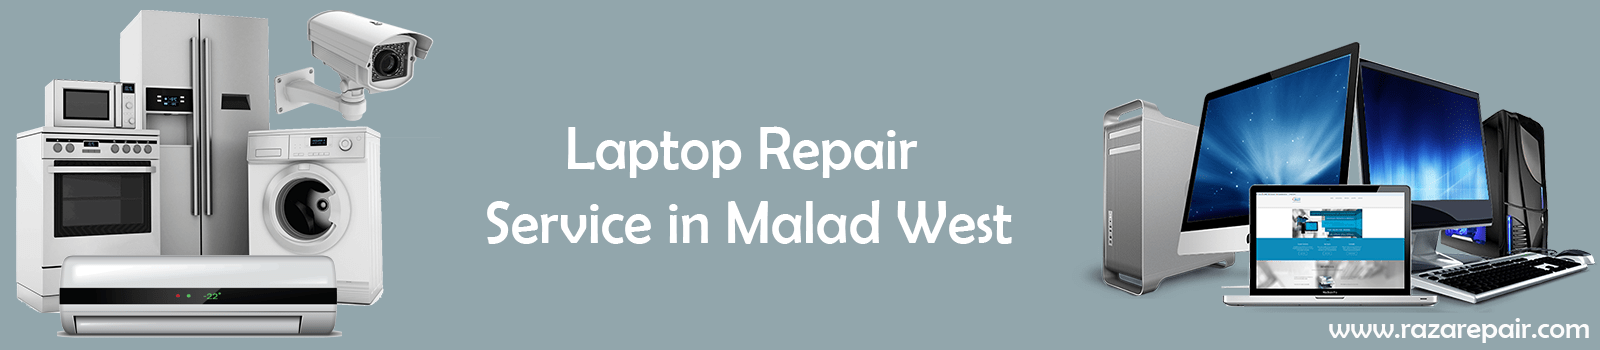 Laptop Repair Service In Malad West | Call Now 8655112626